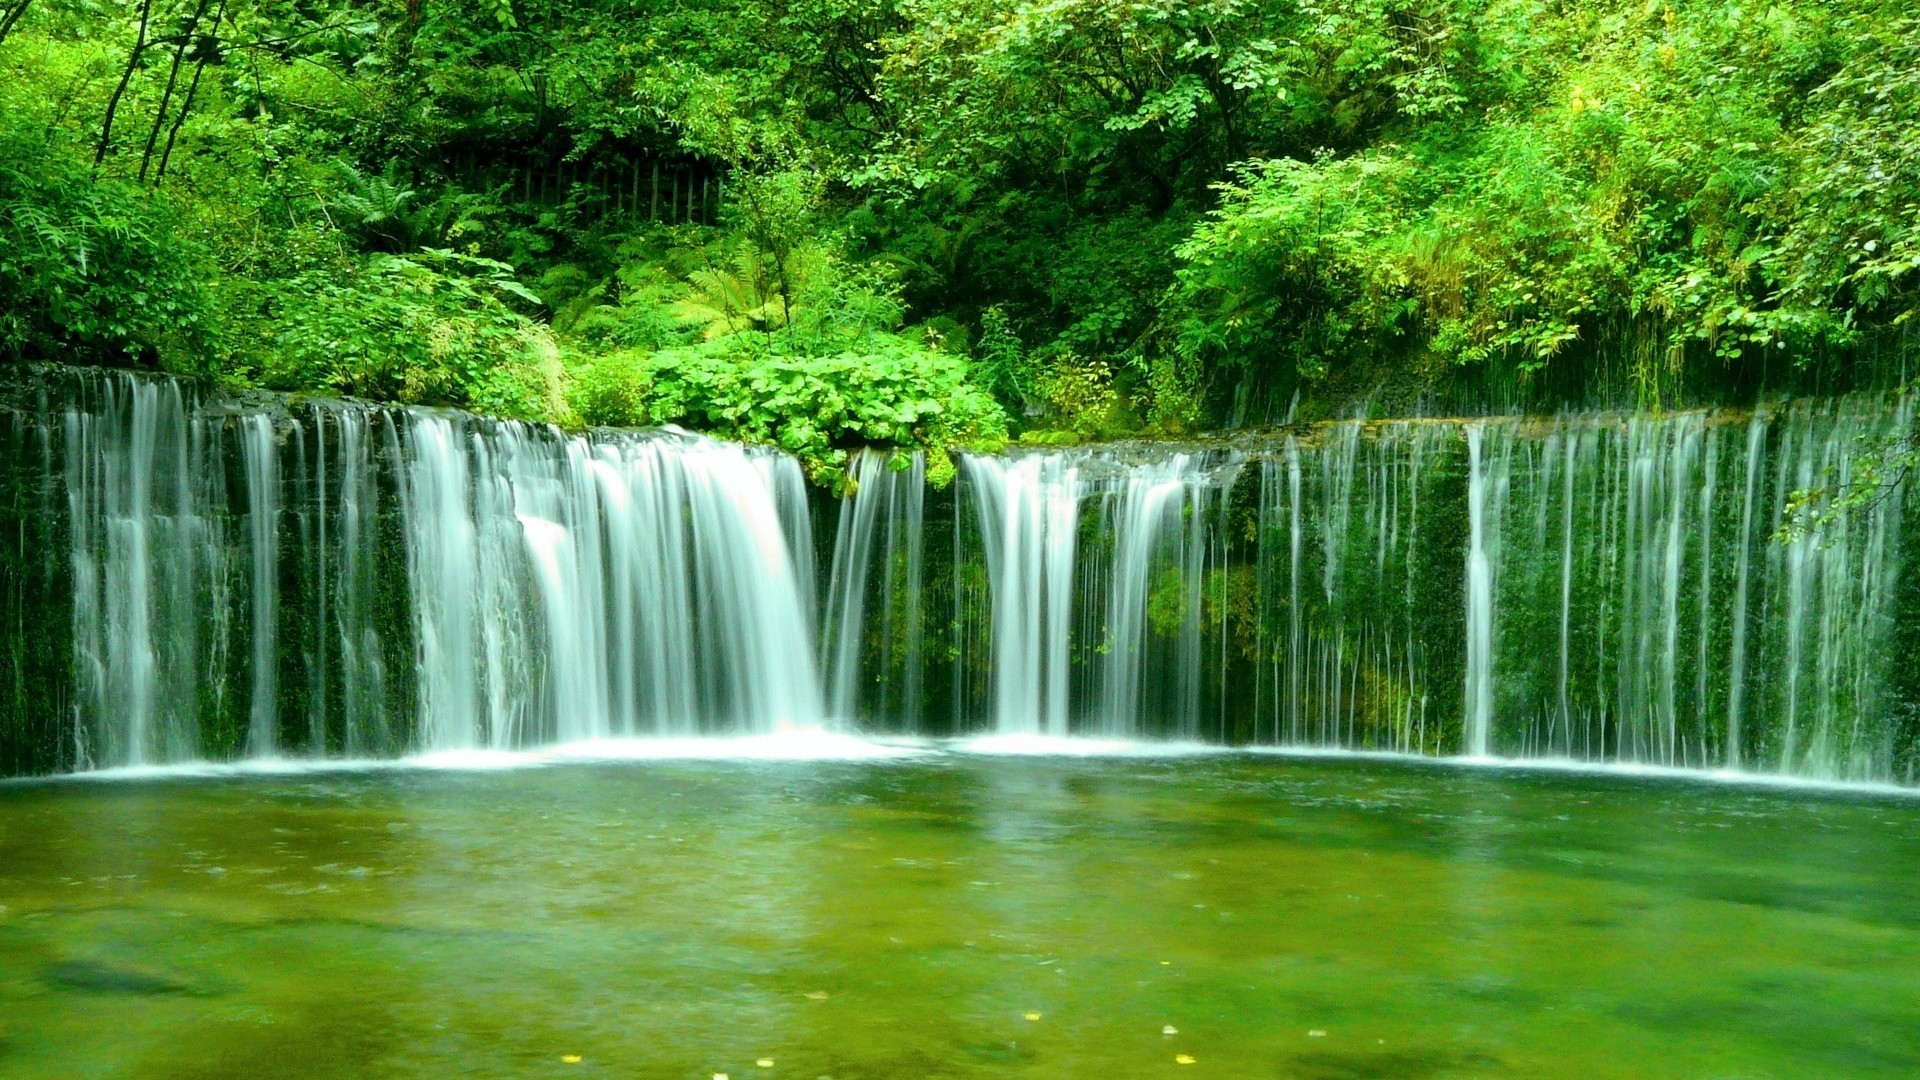 Wallpapers For Desktop Water Scenes (61+ Images